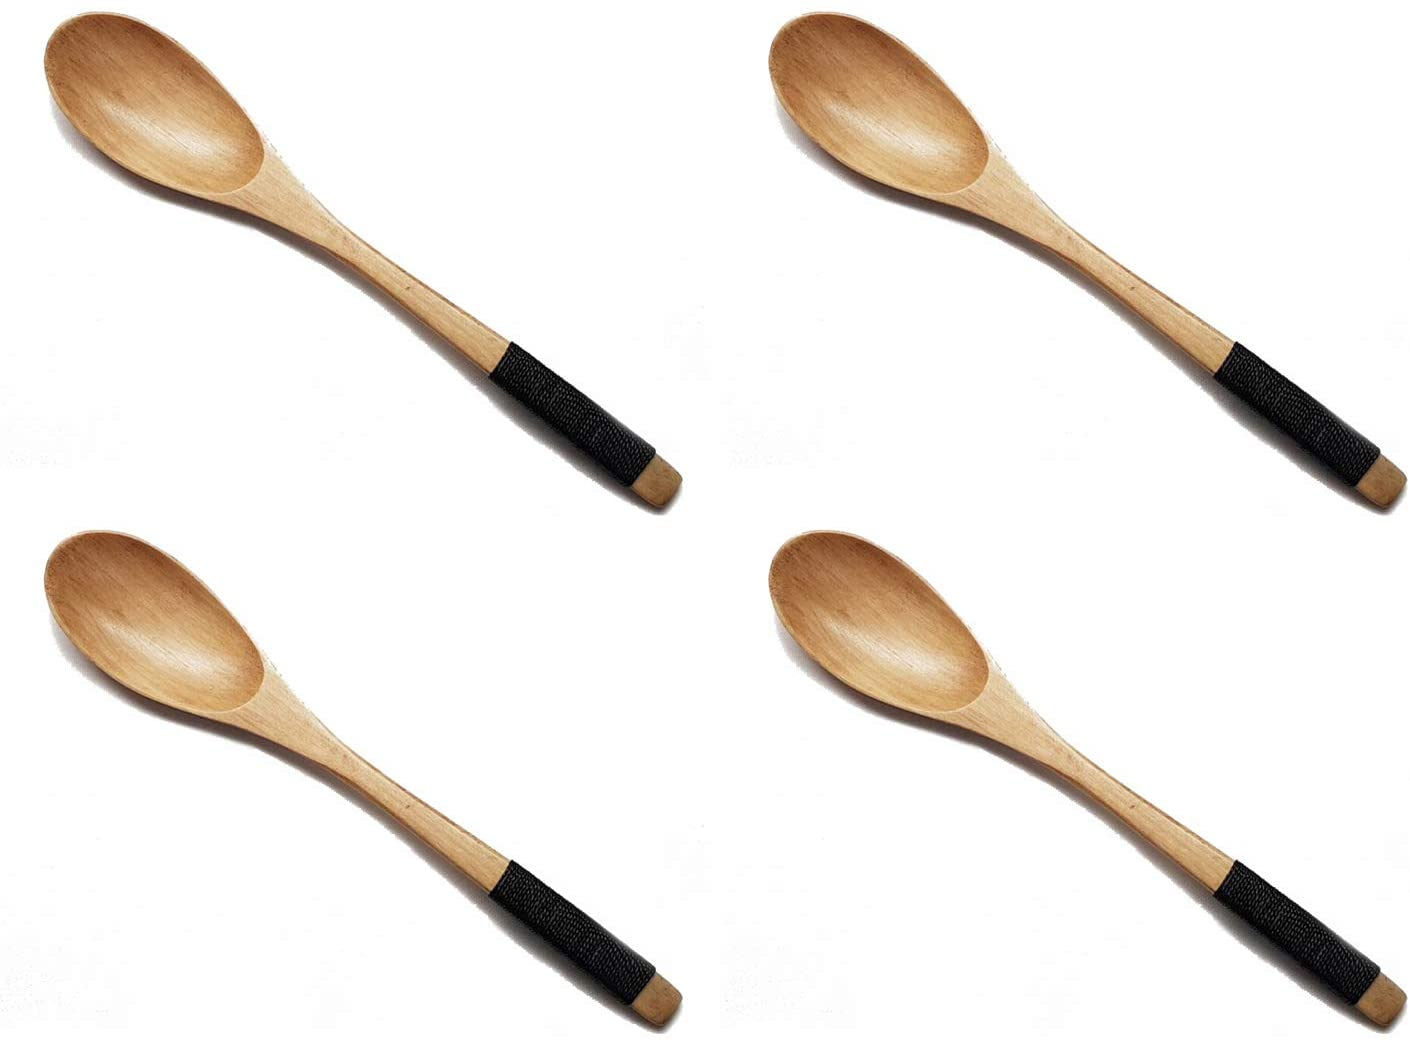 JapanBargain 2685x4, Set of 4 Wooden Dinner Spoons Yogurt Snack Ice Cream Spoons, 7-3/4 inch